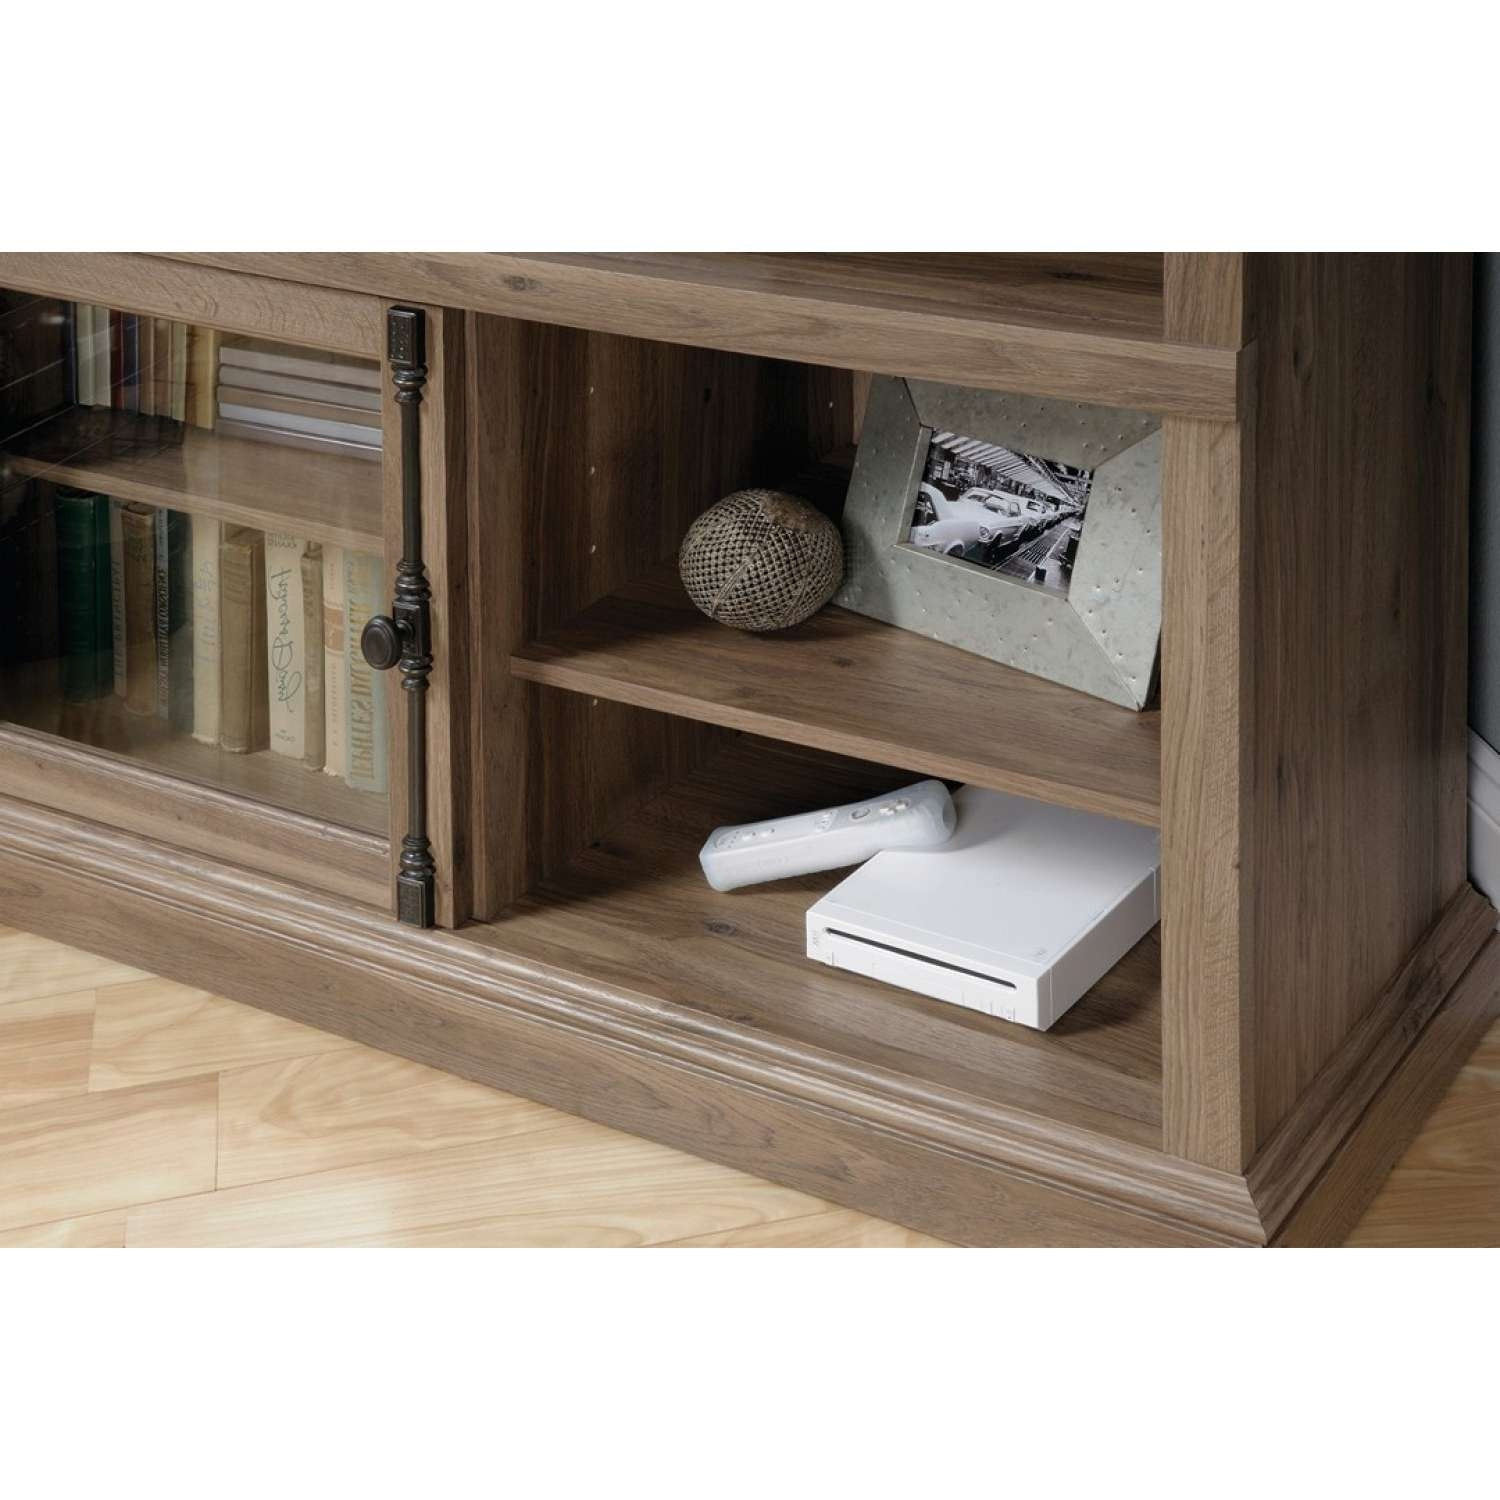 Bishops Oak Effect Corner Tv Standtipton Furniture Regarding Oak Effect Corner Tv Stands (View 2 of 15)